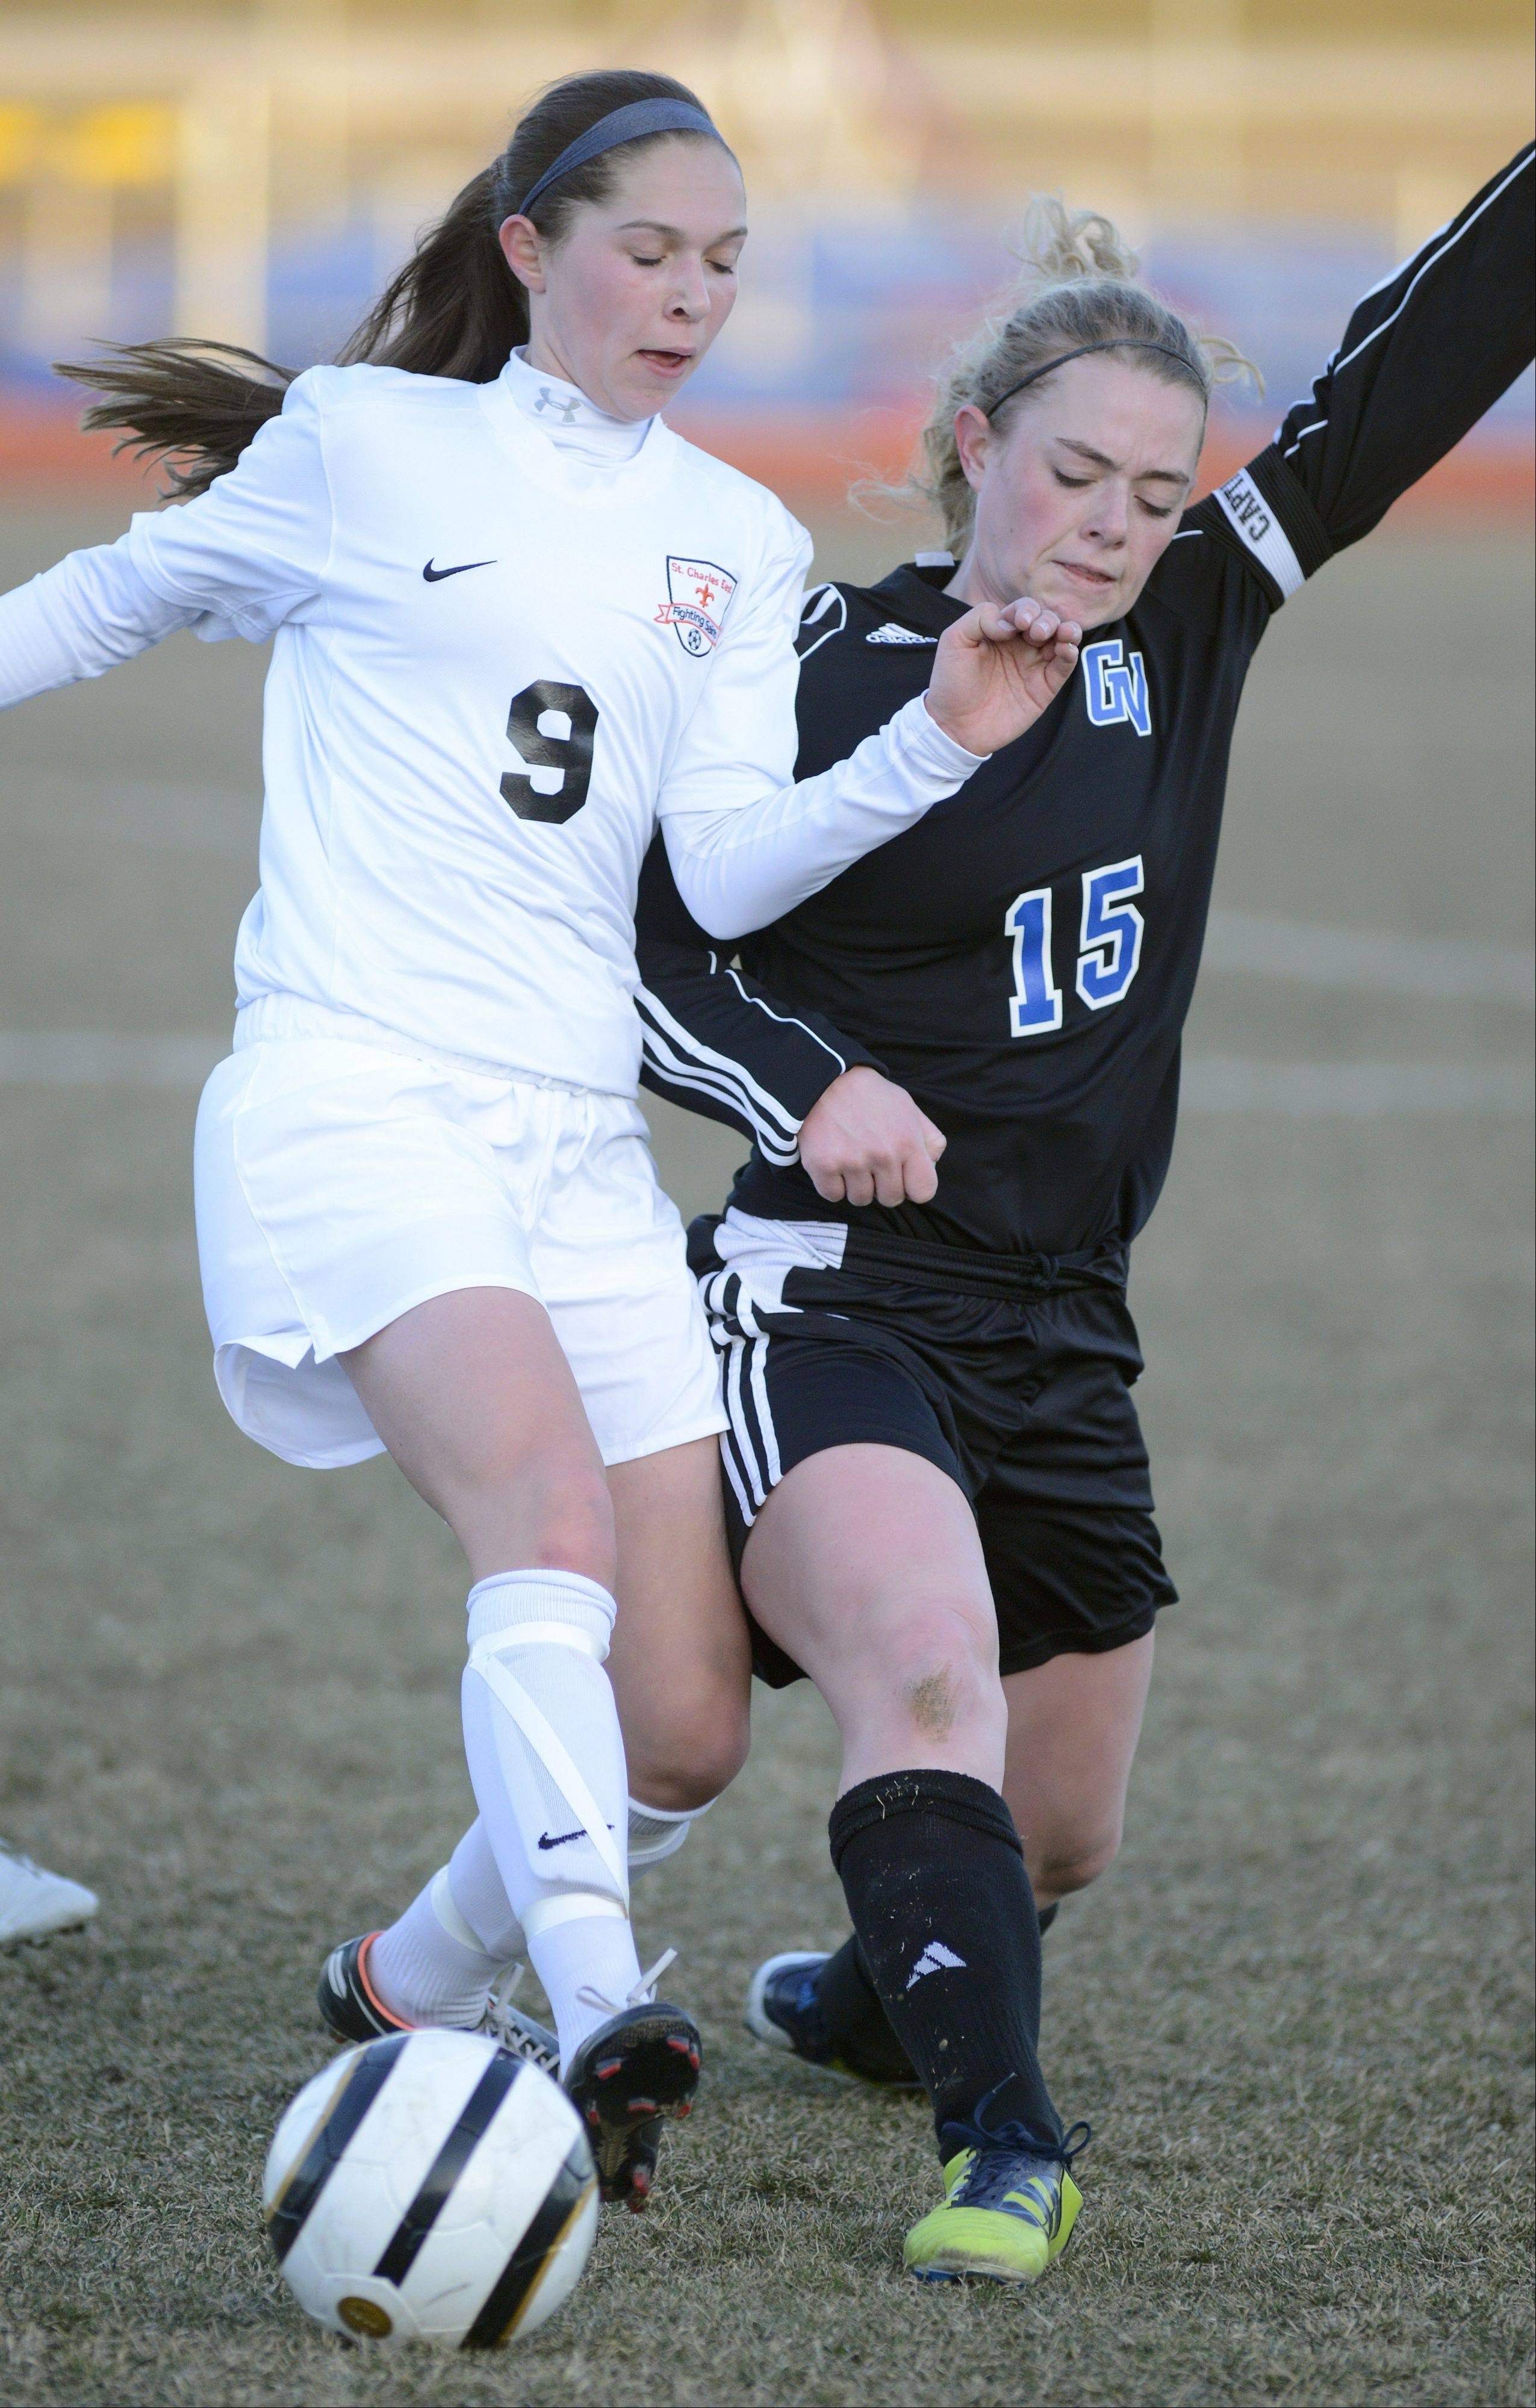 St. Charles East's Darcy Cunningham and Geneva's Annie Waldoch fight for the ball in the first half on Tuesday, April 2.